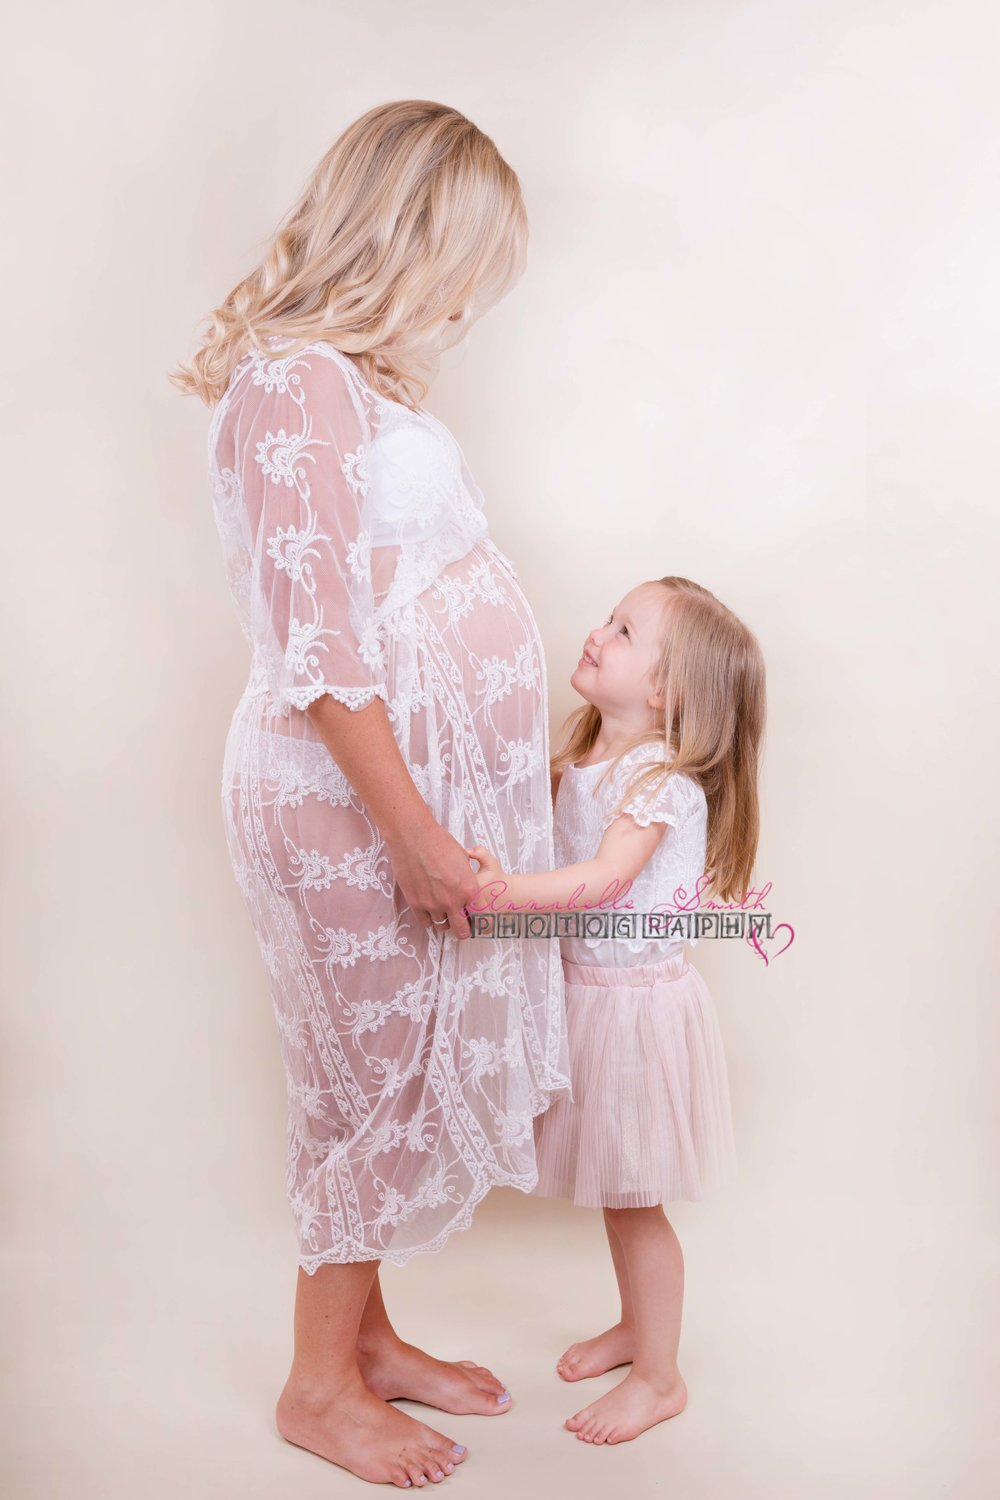 Maternity shoot walton on thames.jpg